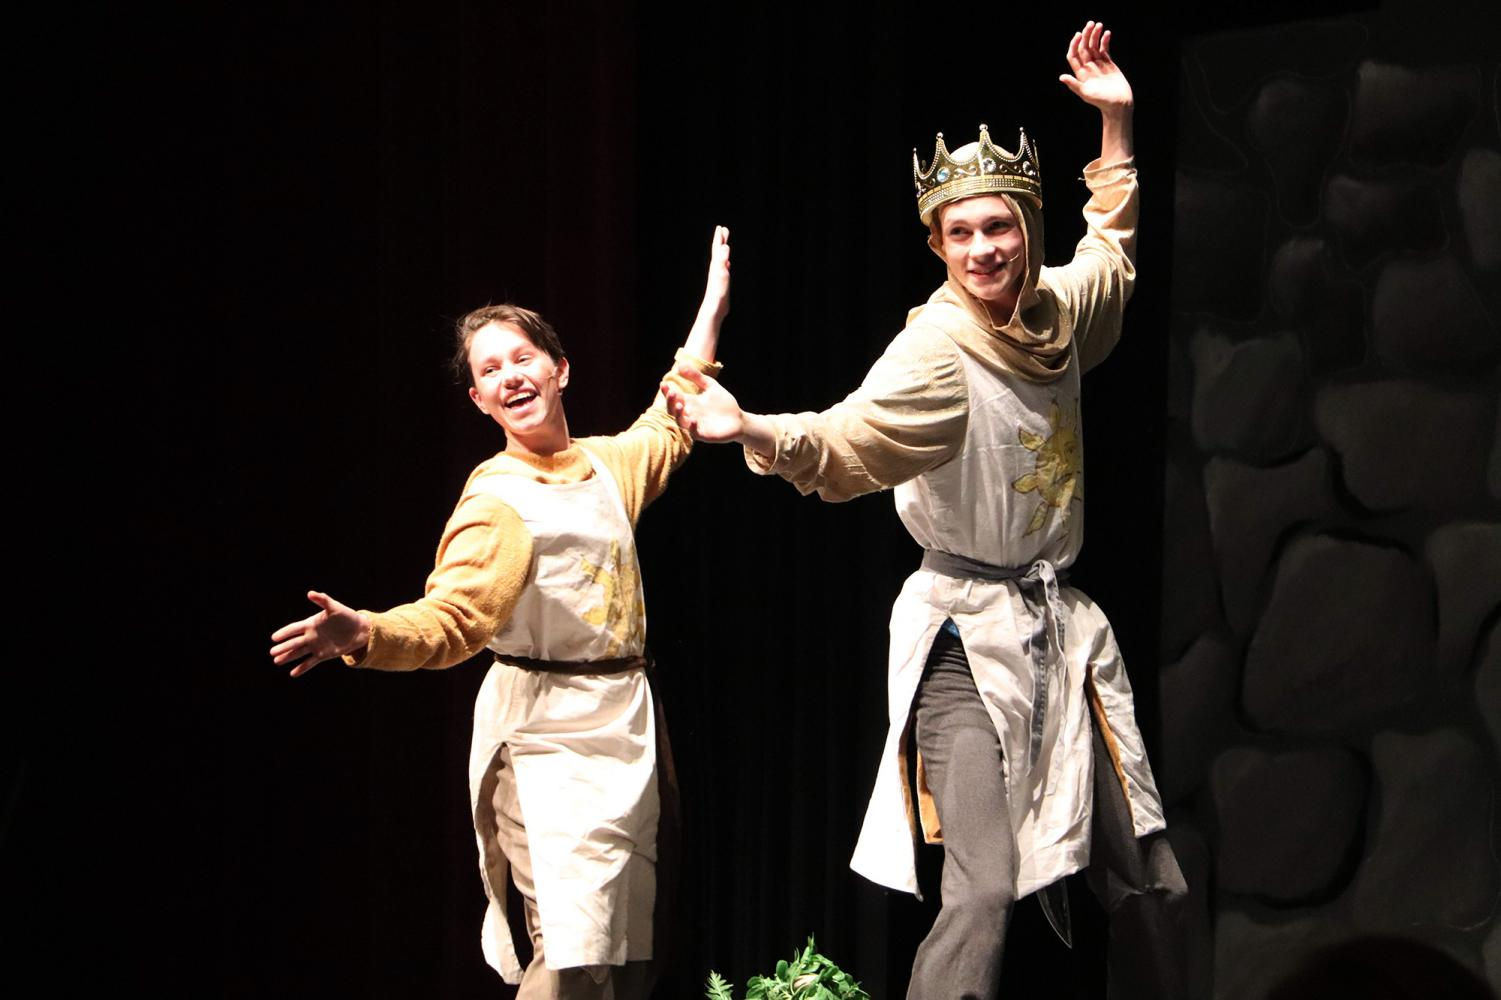 Grinning%2C+senior+Julian+Weslander+and+junior+Jack+Malin+dance+during+the+song+%22Always+Look+on+the+Bright+Side+of+Life%2C%22+during+the+winter+musical%2C+Spamalot+on+Jan.+25.+Malin+played+King+Arthur+and+Weslander+played+Arthur%27s+trusty+servant.+The+two+travelled+far+and+wide+in+search+of+the+Holy+Grail+for+two+almost+sold-out+nights%2C+making+Spamalot+the+highest+attended+musical+in+five+years.